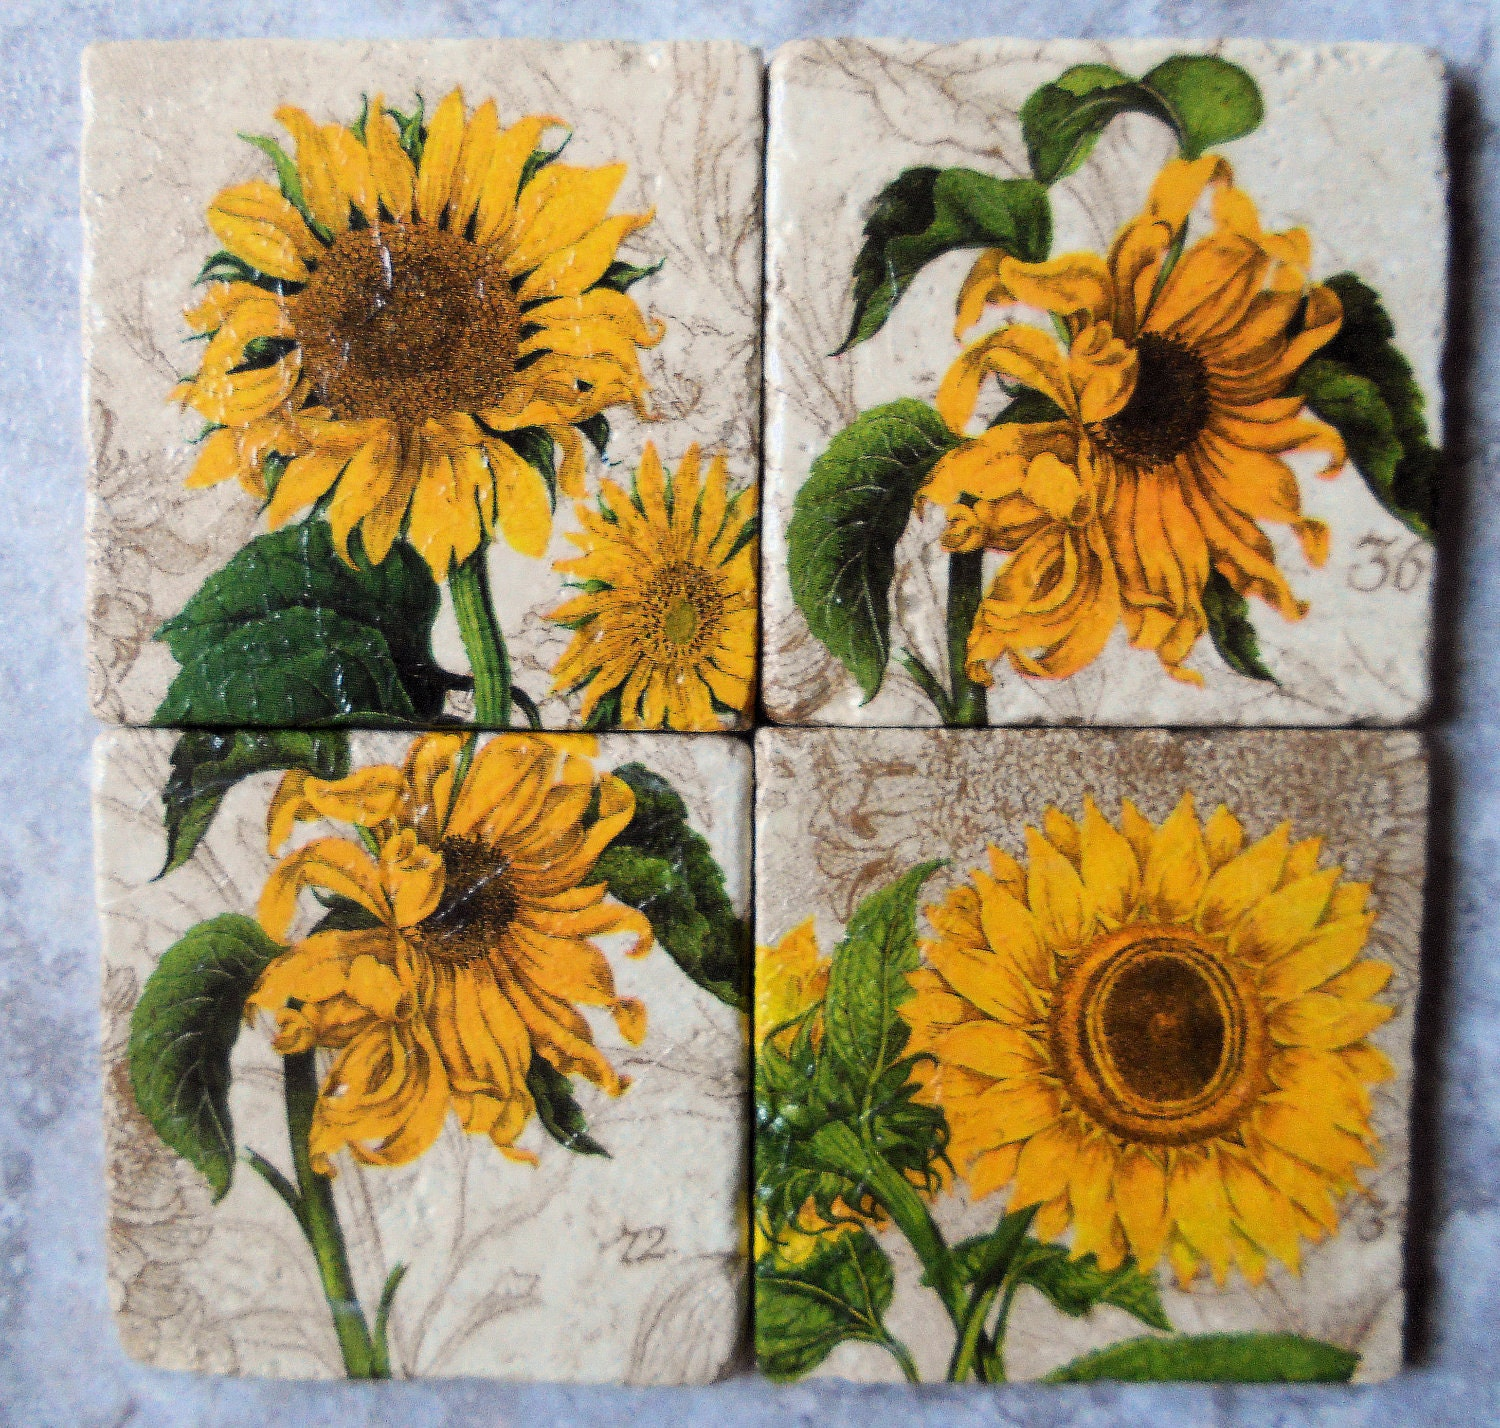 Sunflower Home Decor Decorating Ideas Home Decorators Catalog Best Ideas of Home Decor and Design [homedecoratorscatalog.us]